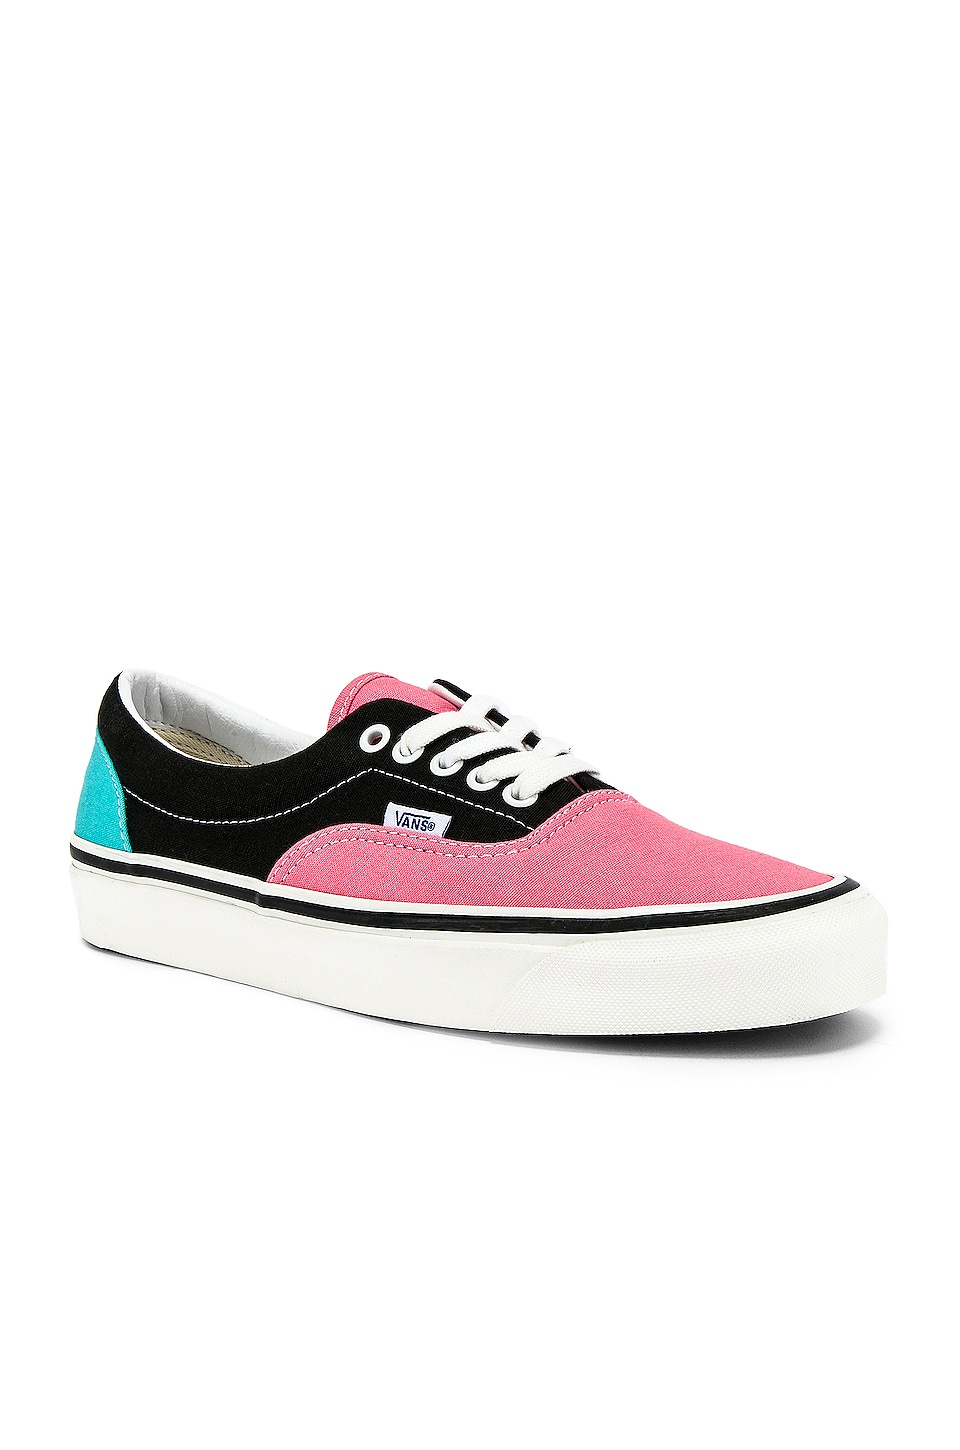 Vans Era 95 DX in OG Pink & OG Black & OG Aqua